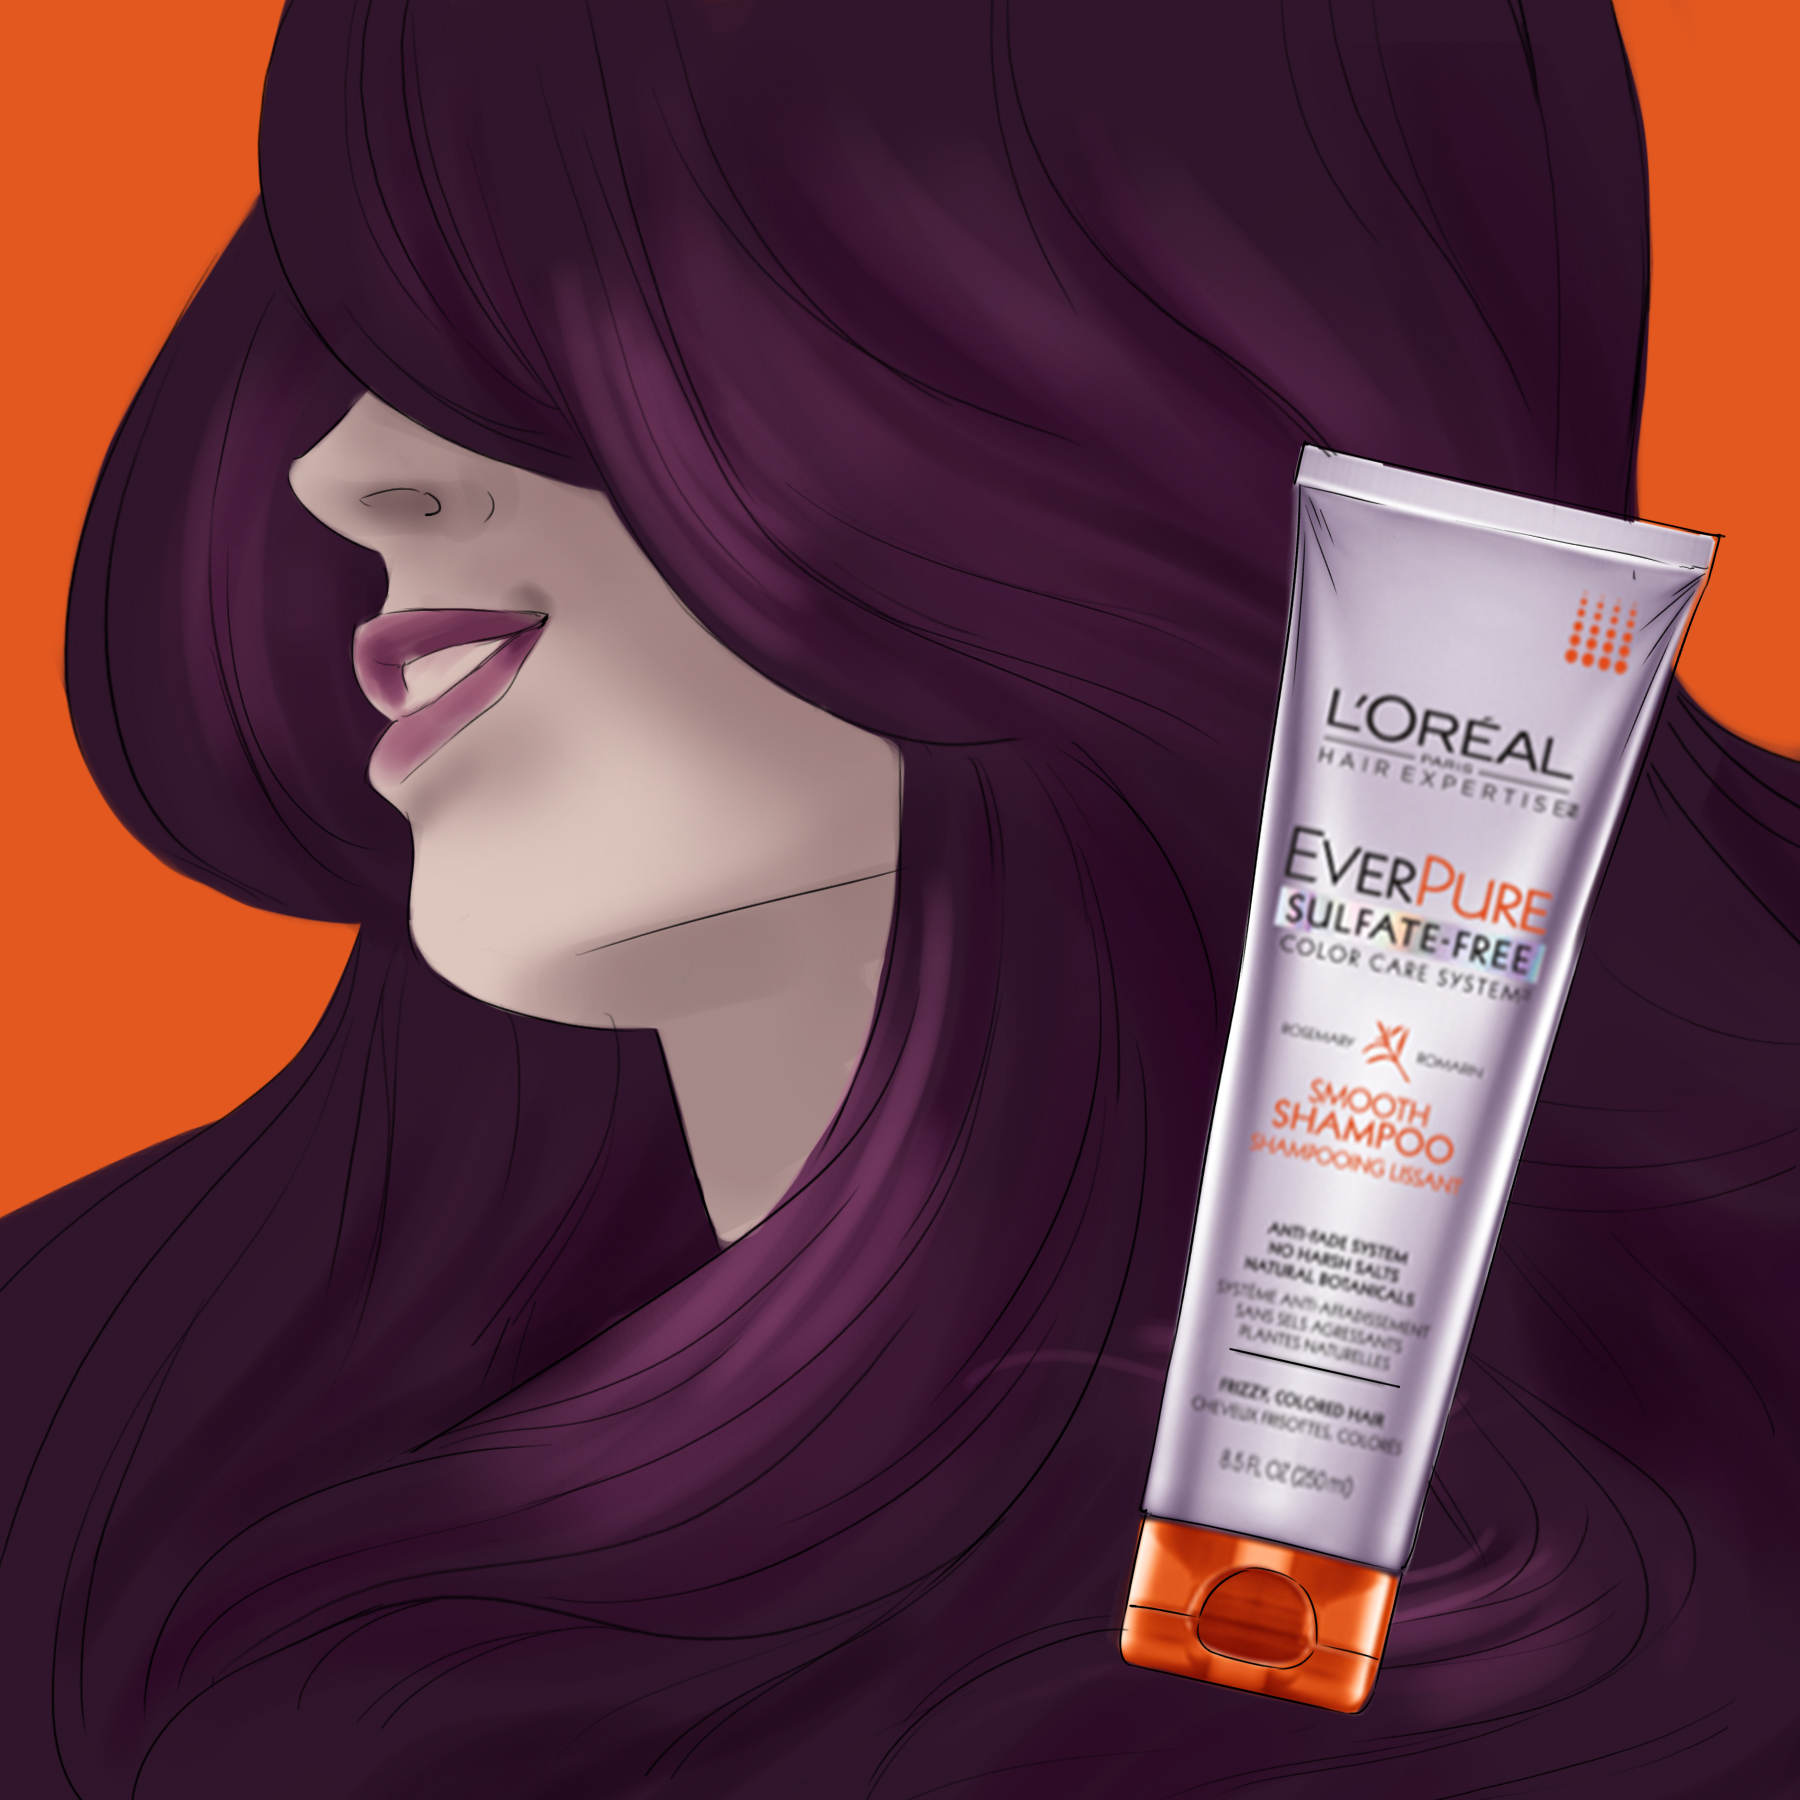 L'Oreal 2.color